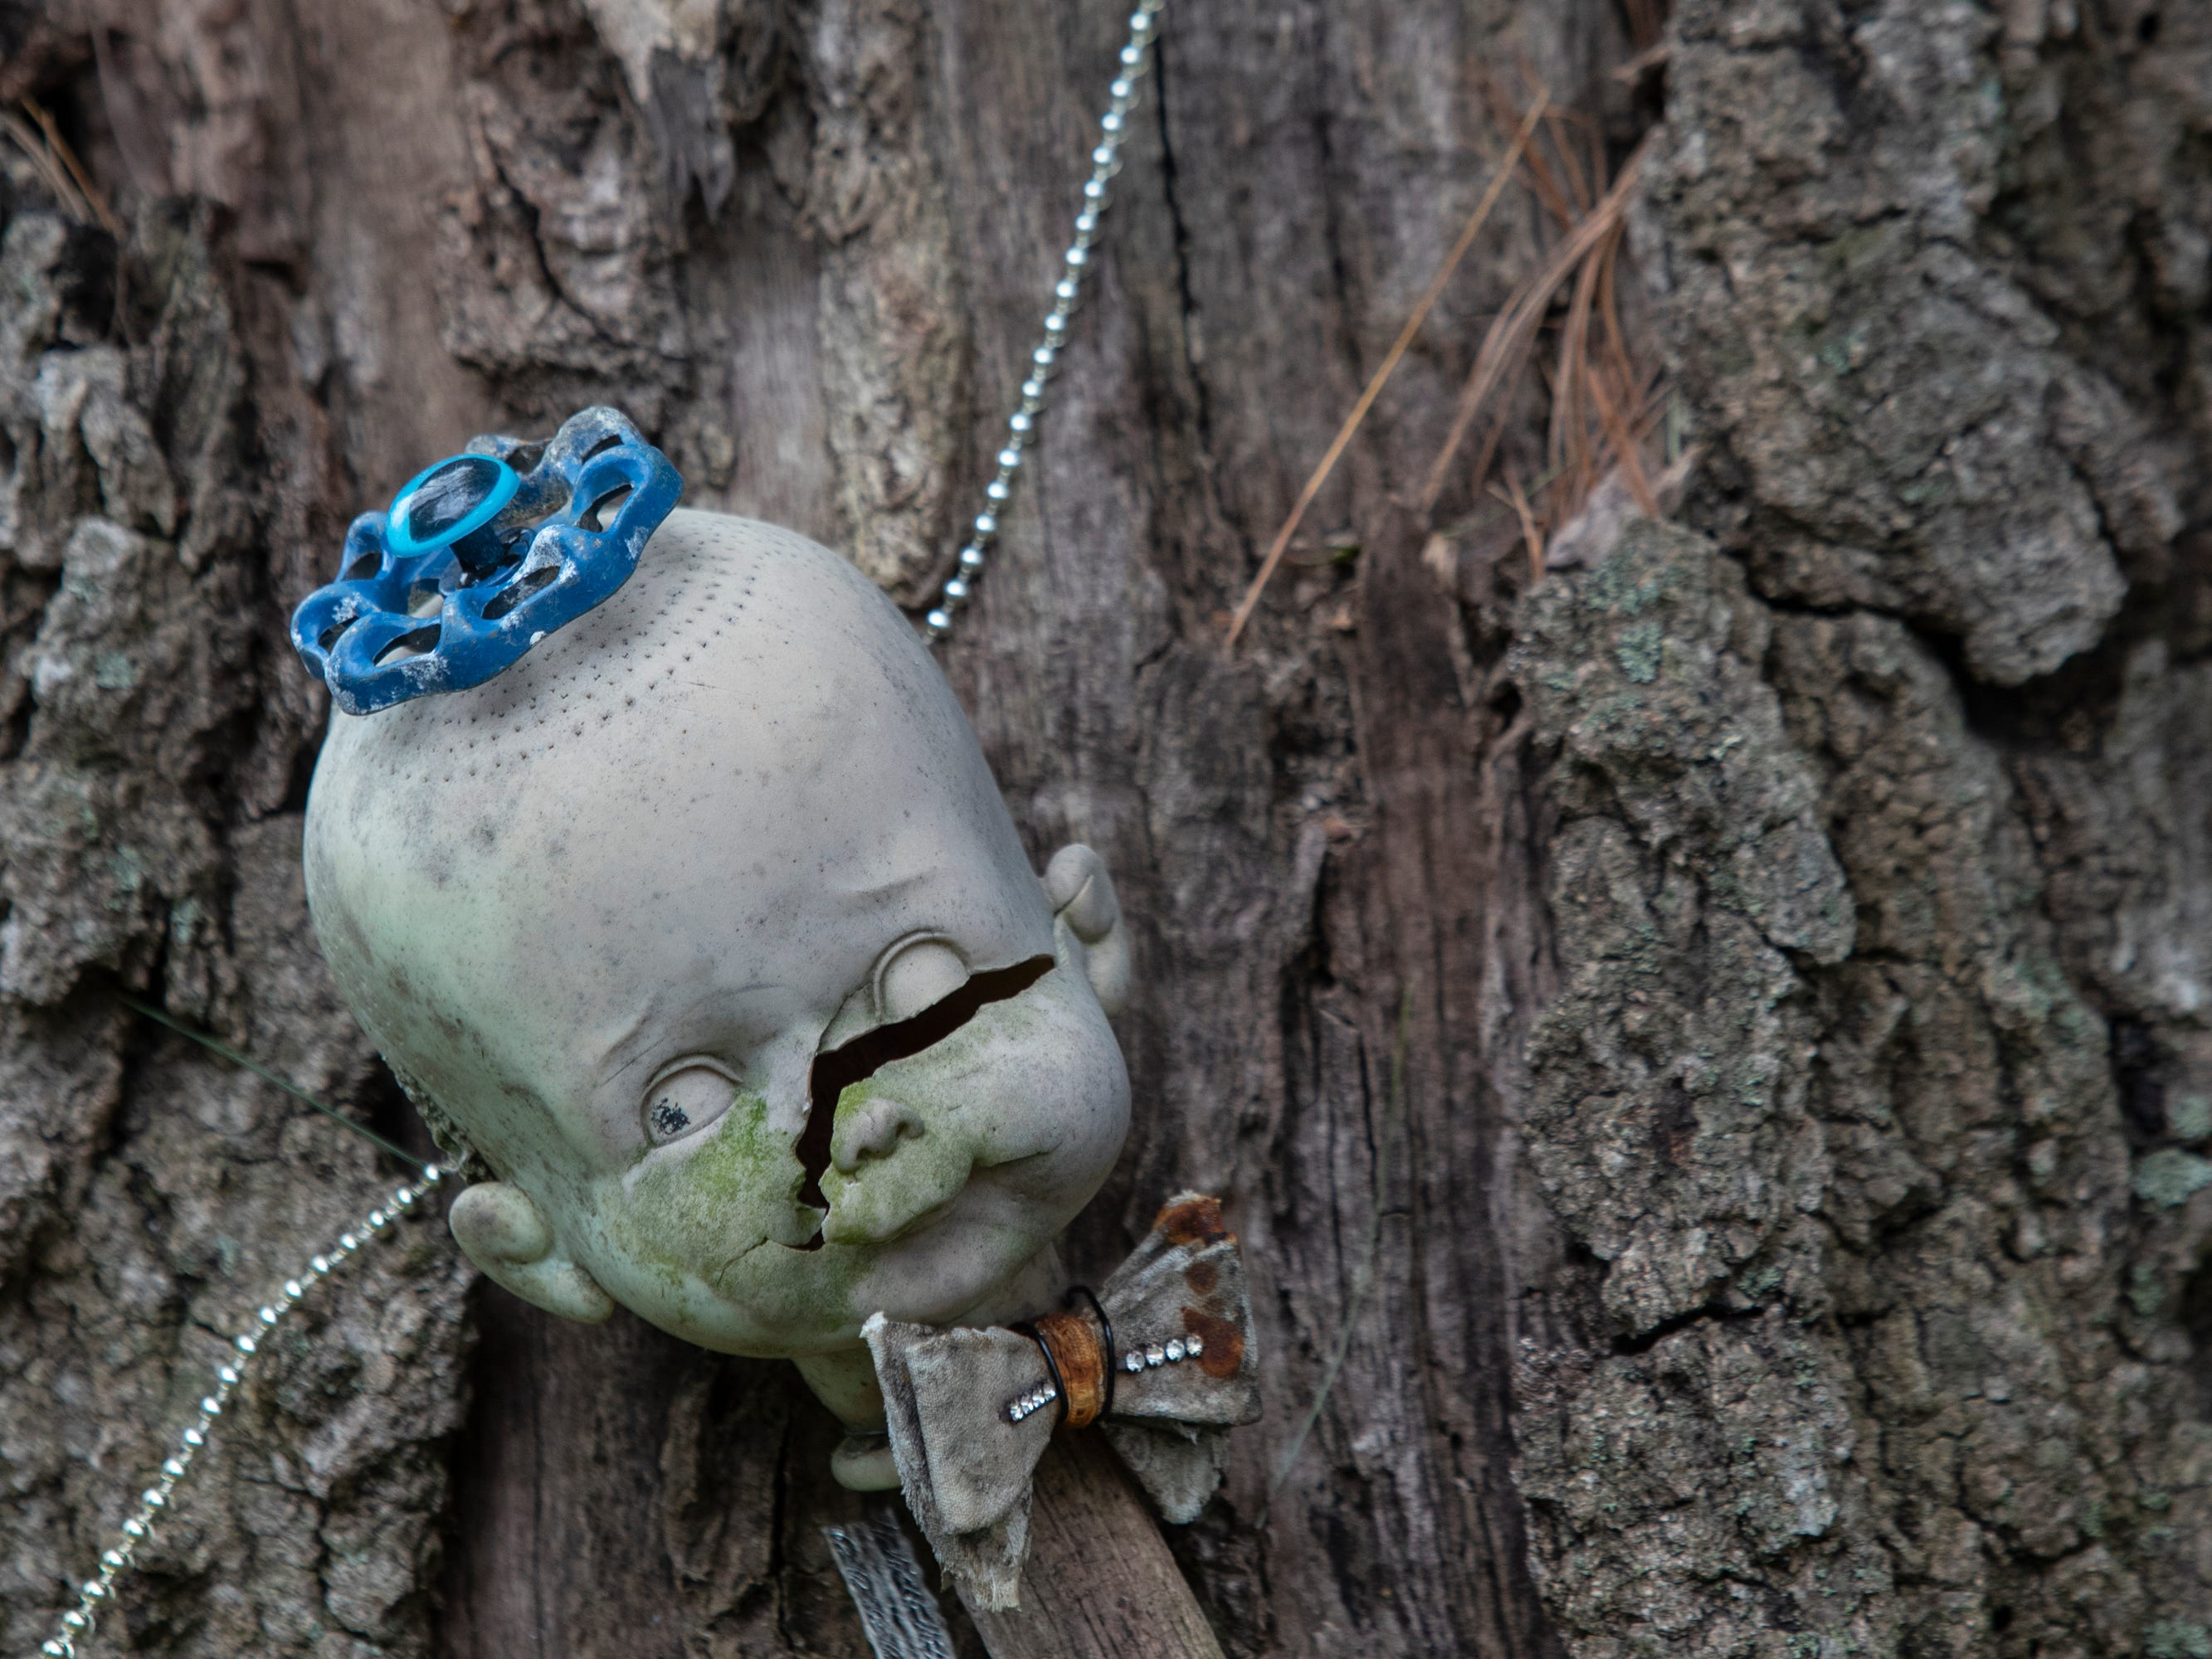 The head of a doll has the handle of a spigot on its head and is attached to a tree at the Home for Wayward Babydolls. April 19, 2019